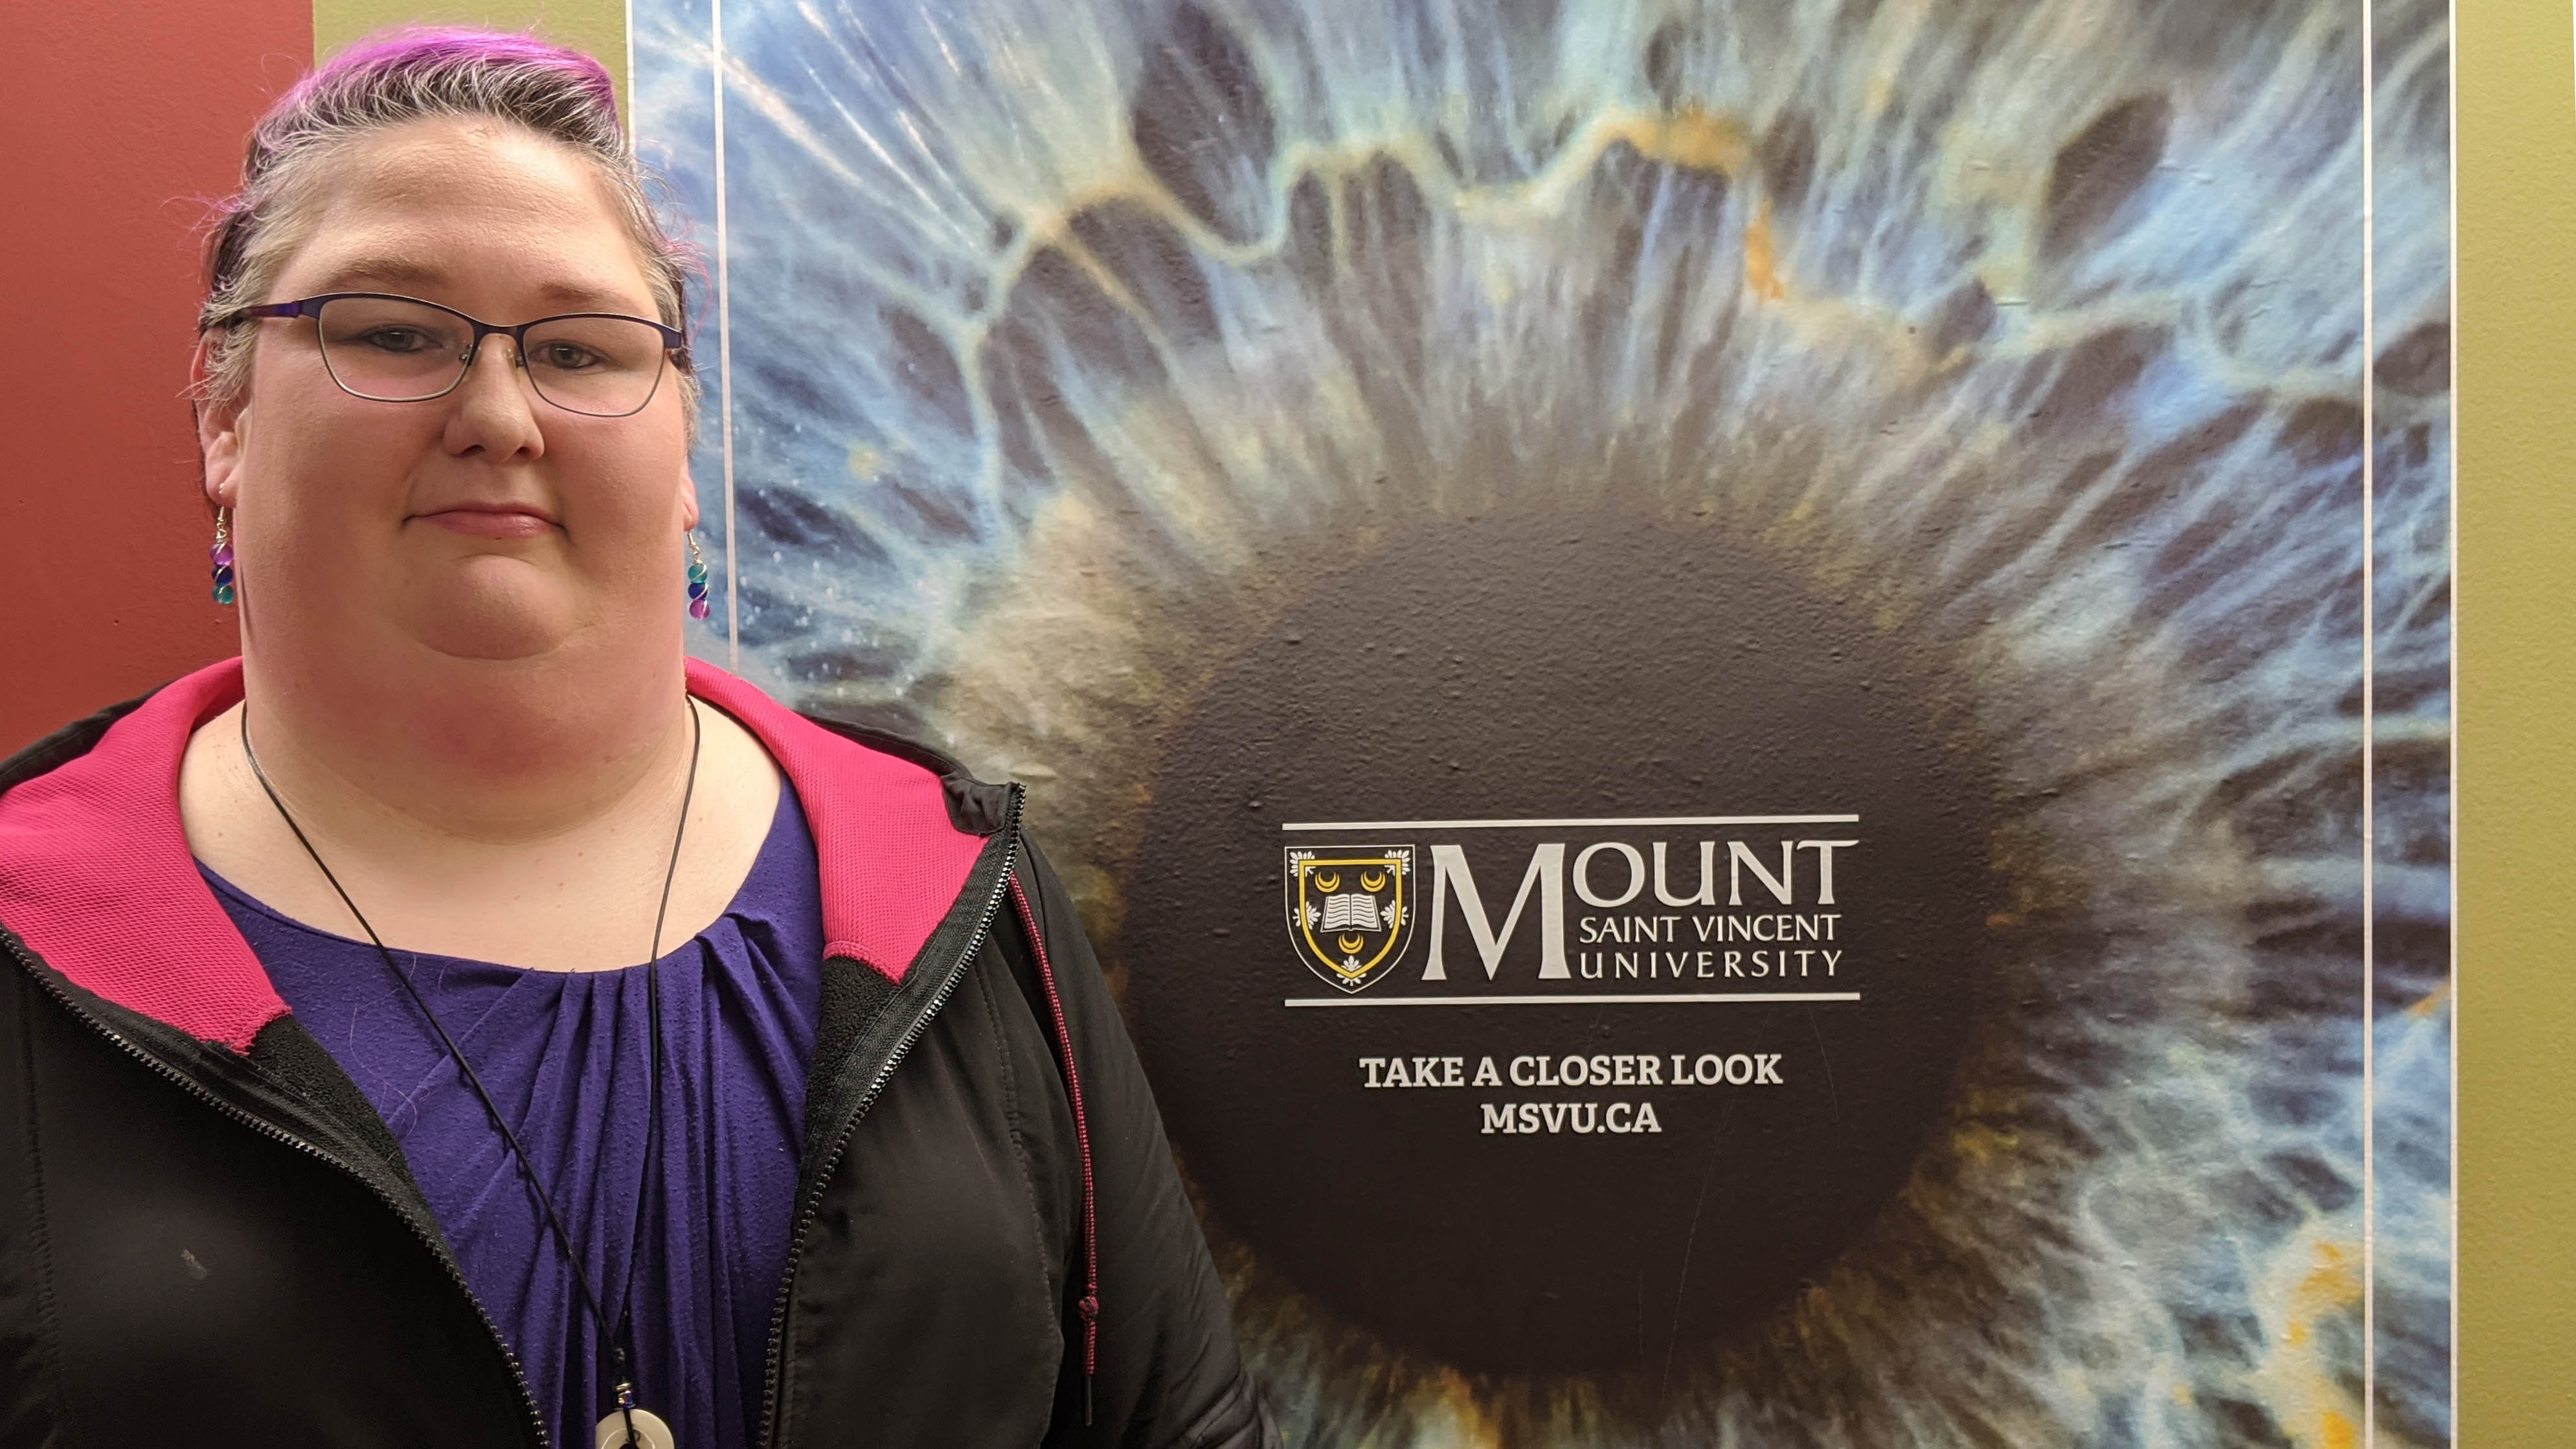 Selina Pottle at MSVU, where she accumulated $70,000 in student debt as a former student.